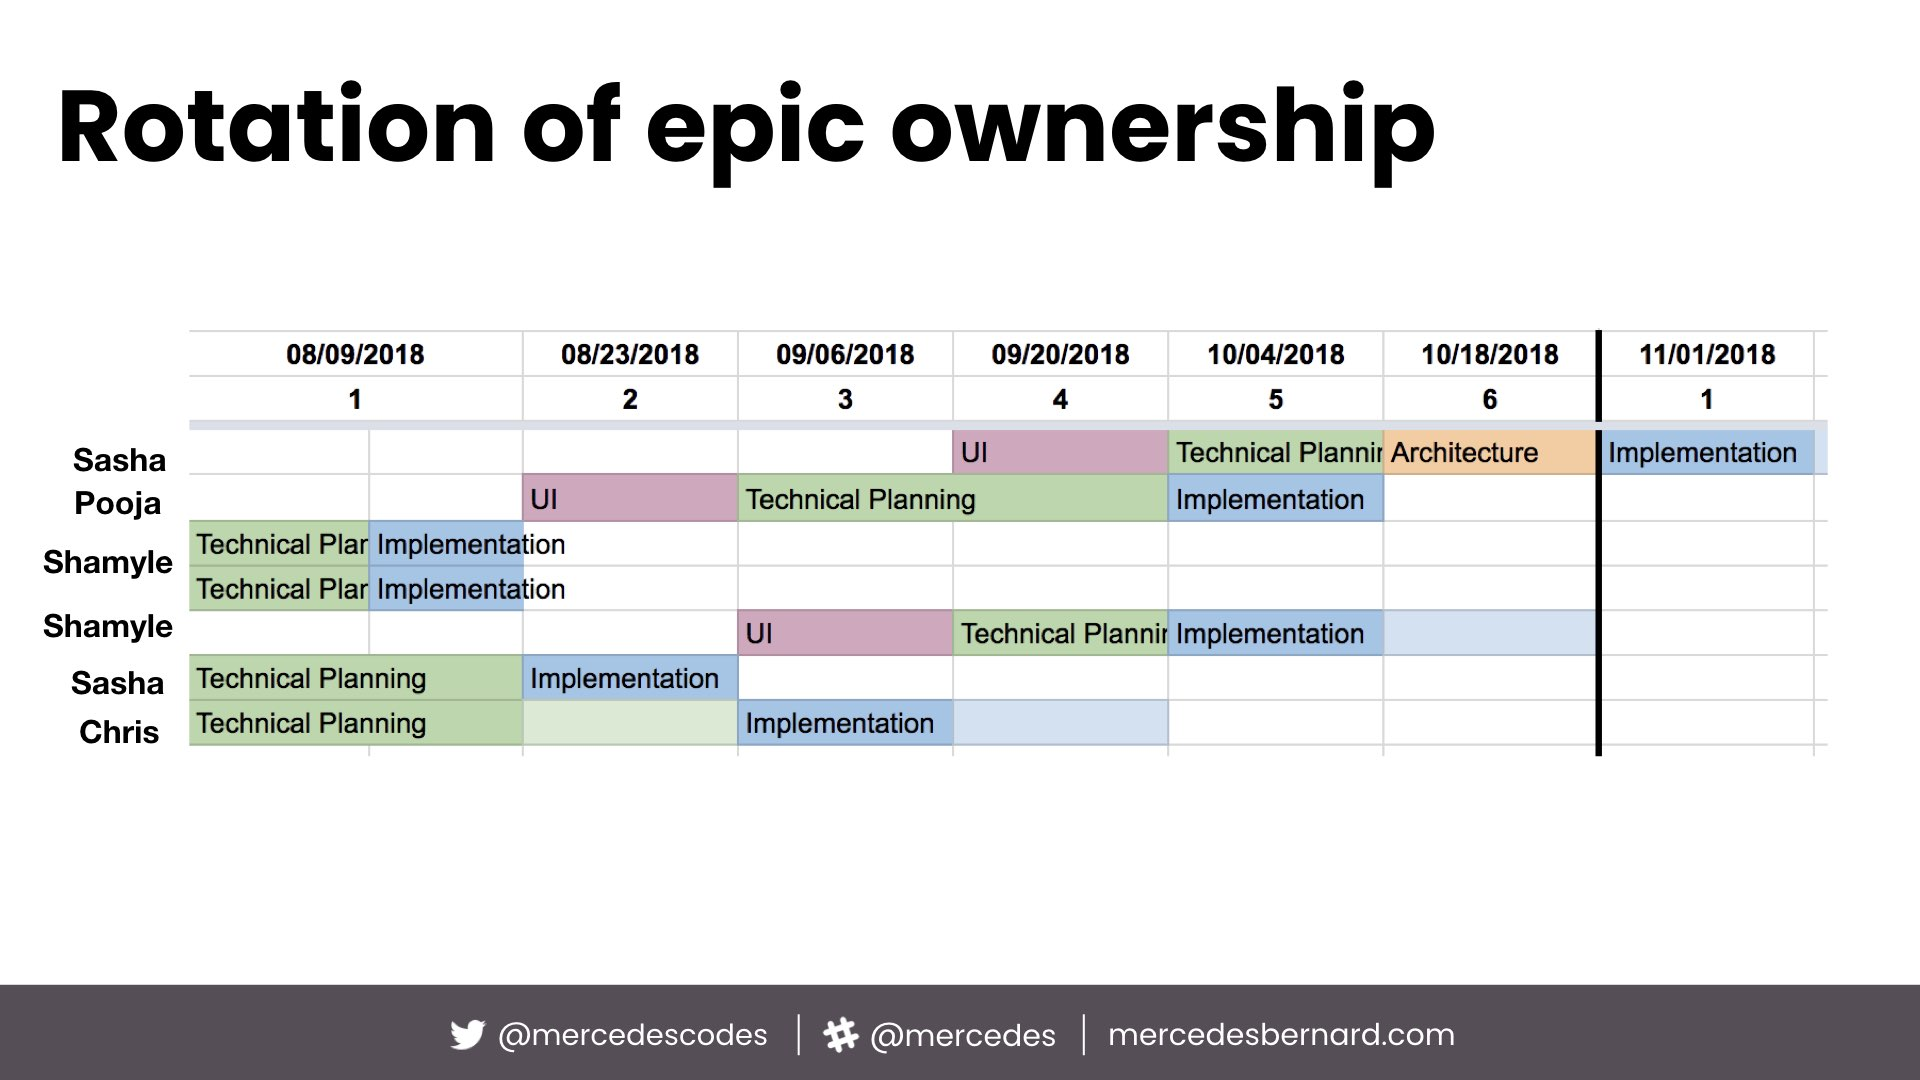 Rotation of epic ownership